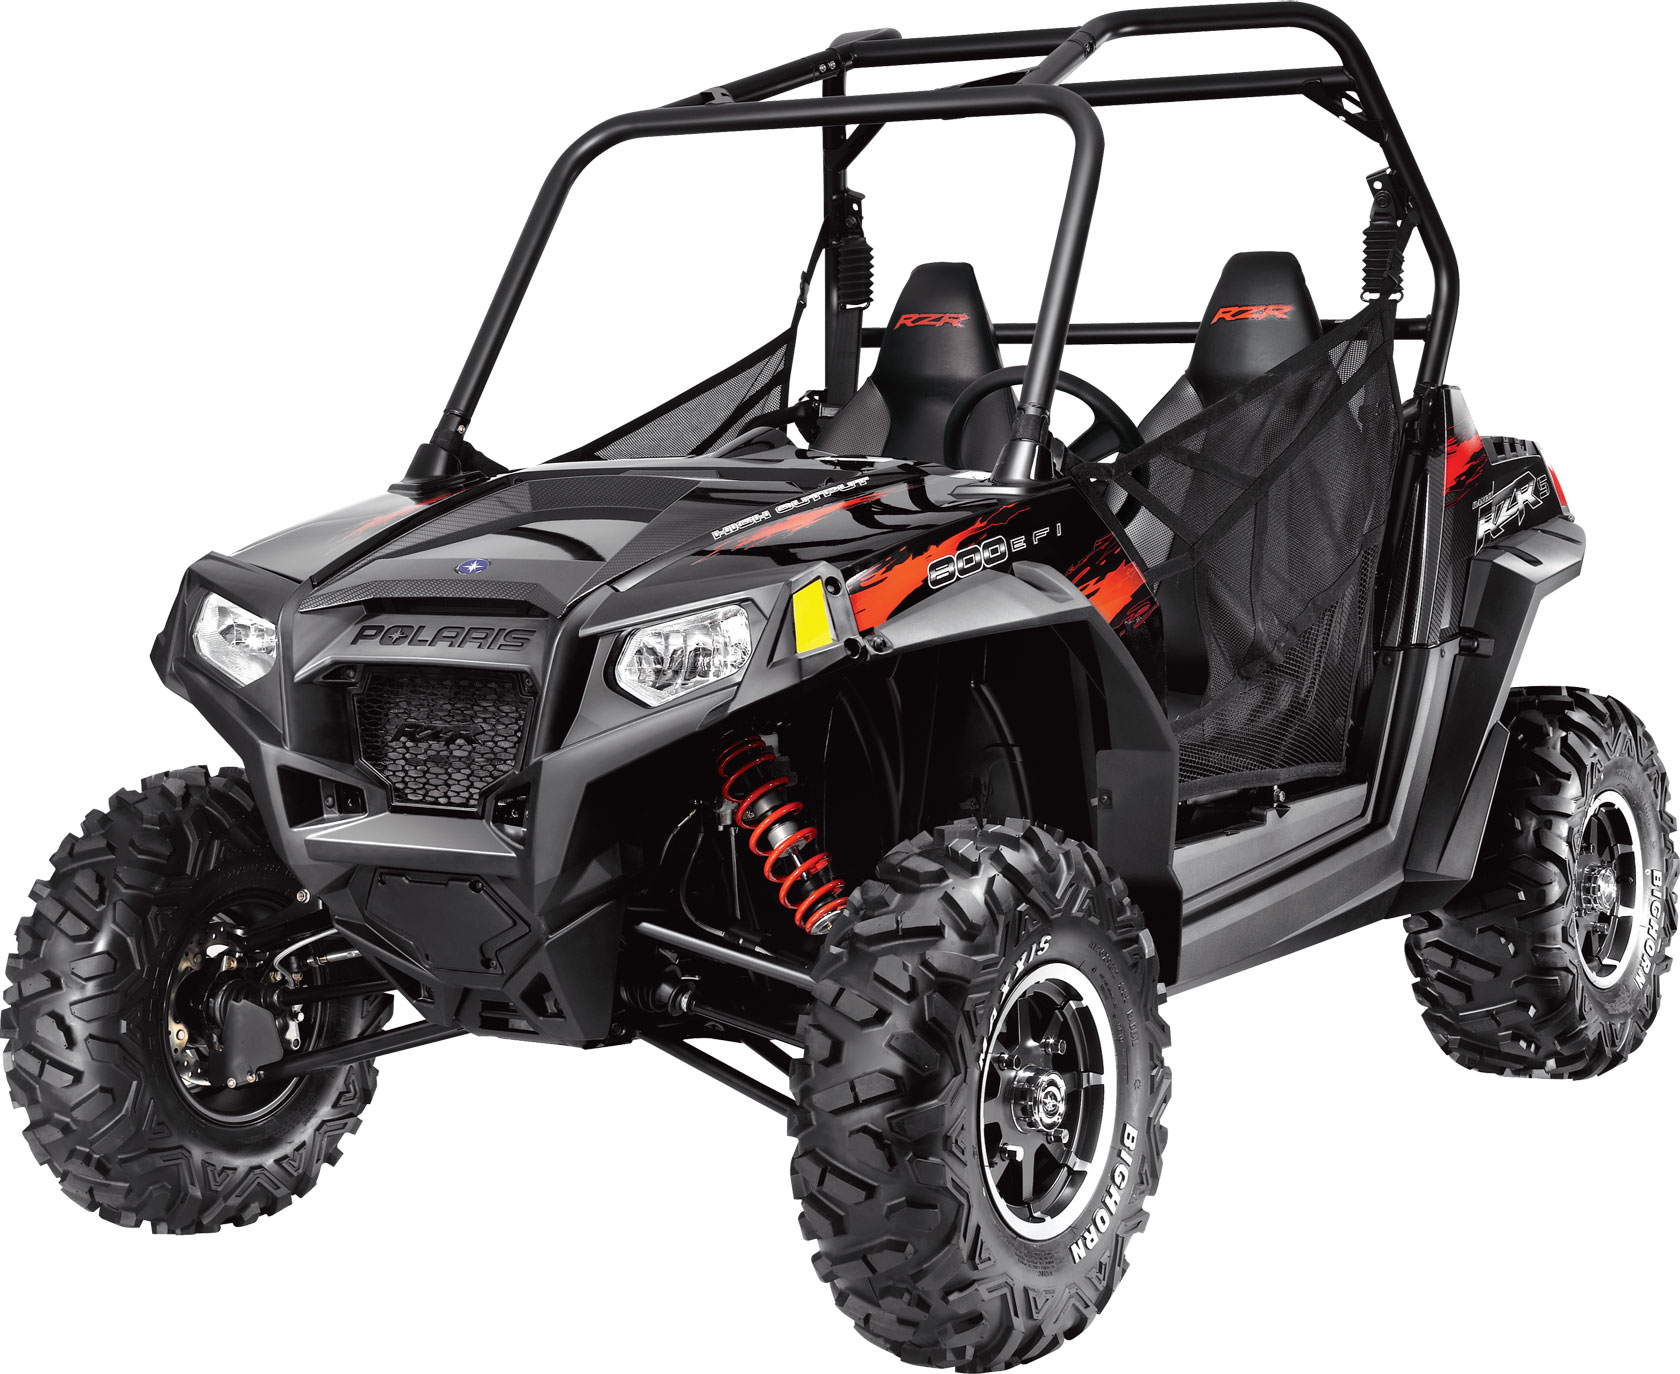 hight resolution of polaris rzr s 800 le 2010 2011